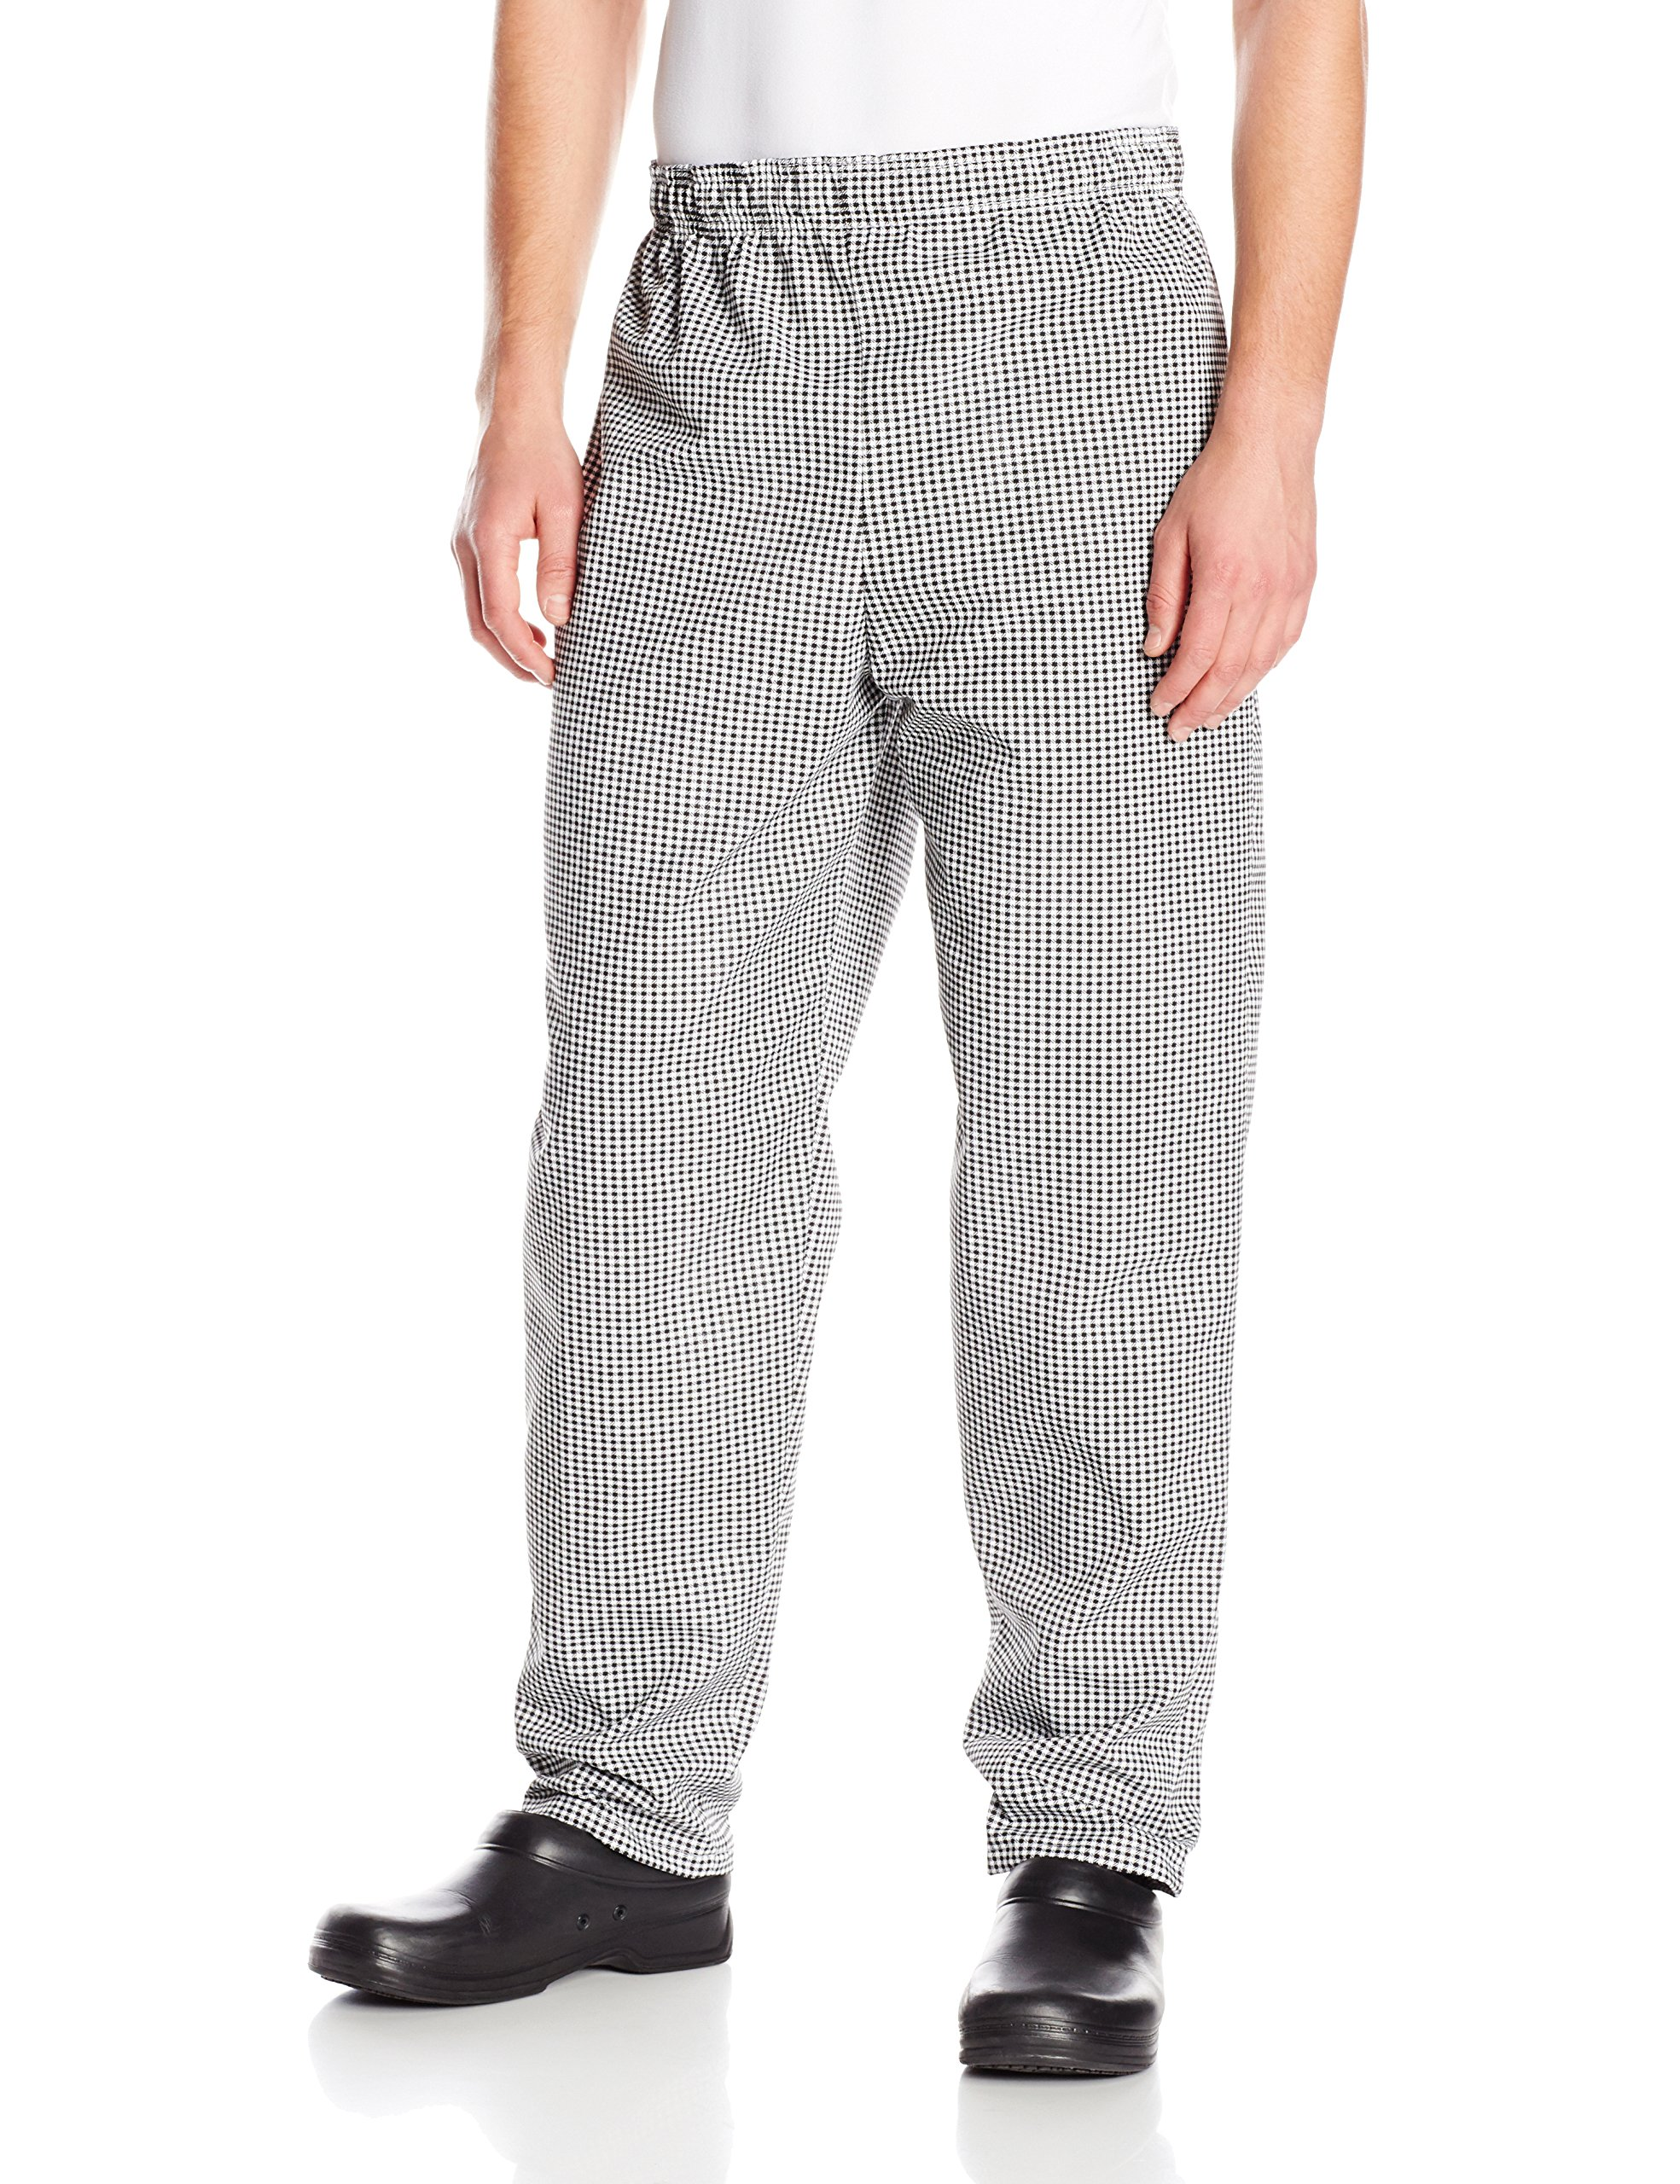 Chef Designs Red Kap Men's Baggy Chef Pant, Black/White Check, Medium